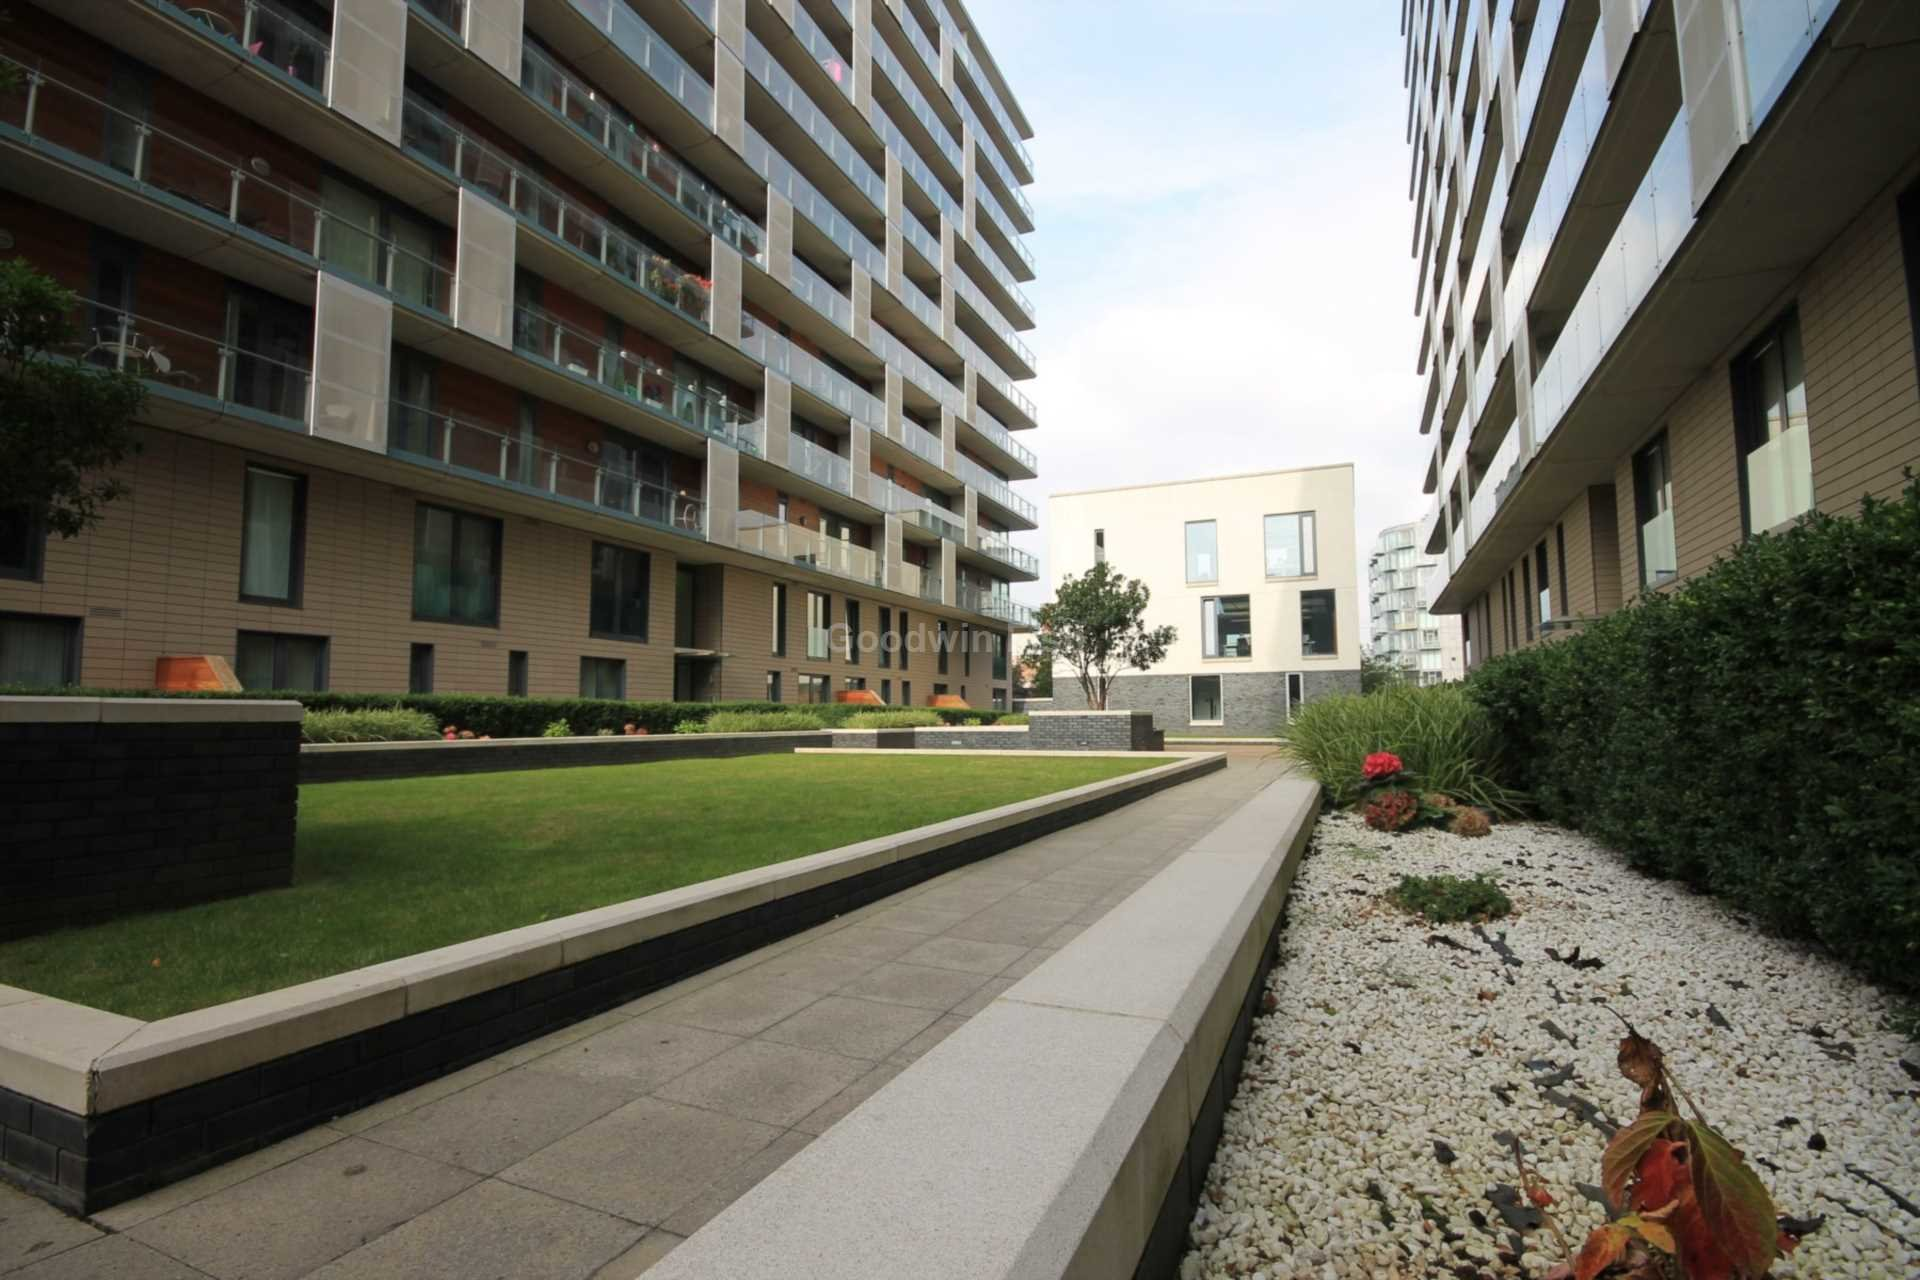 Best 2 Bedroom Apartment To Rent Block Spectrum Blackfriars With Pictures